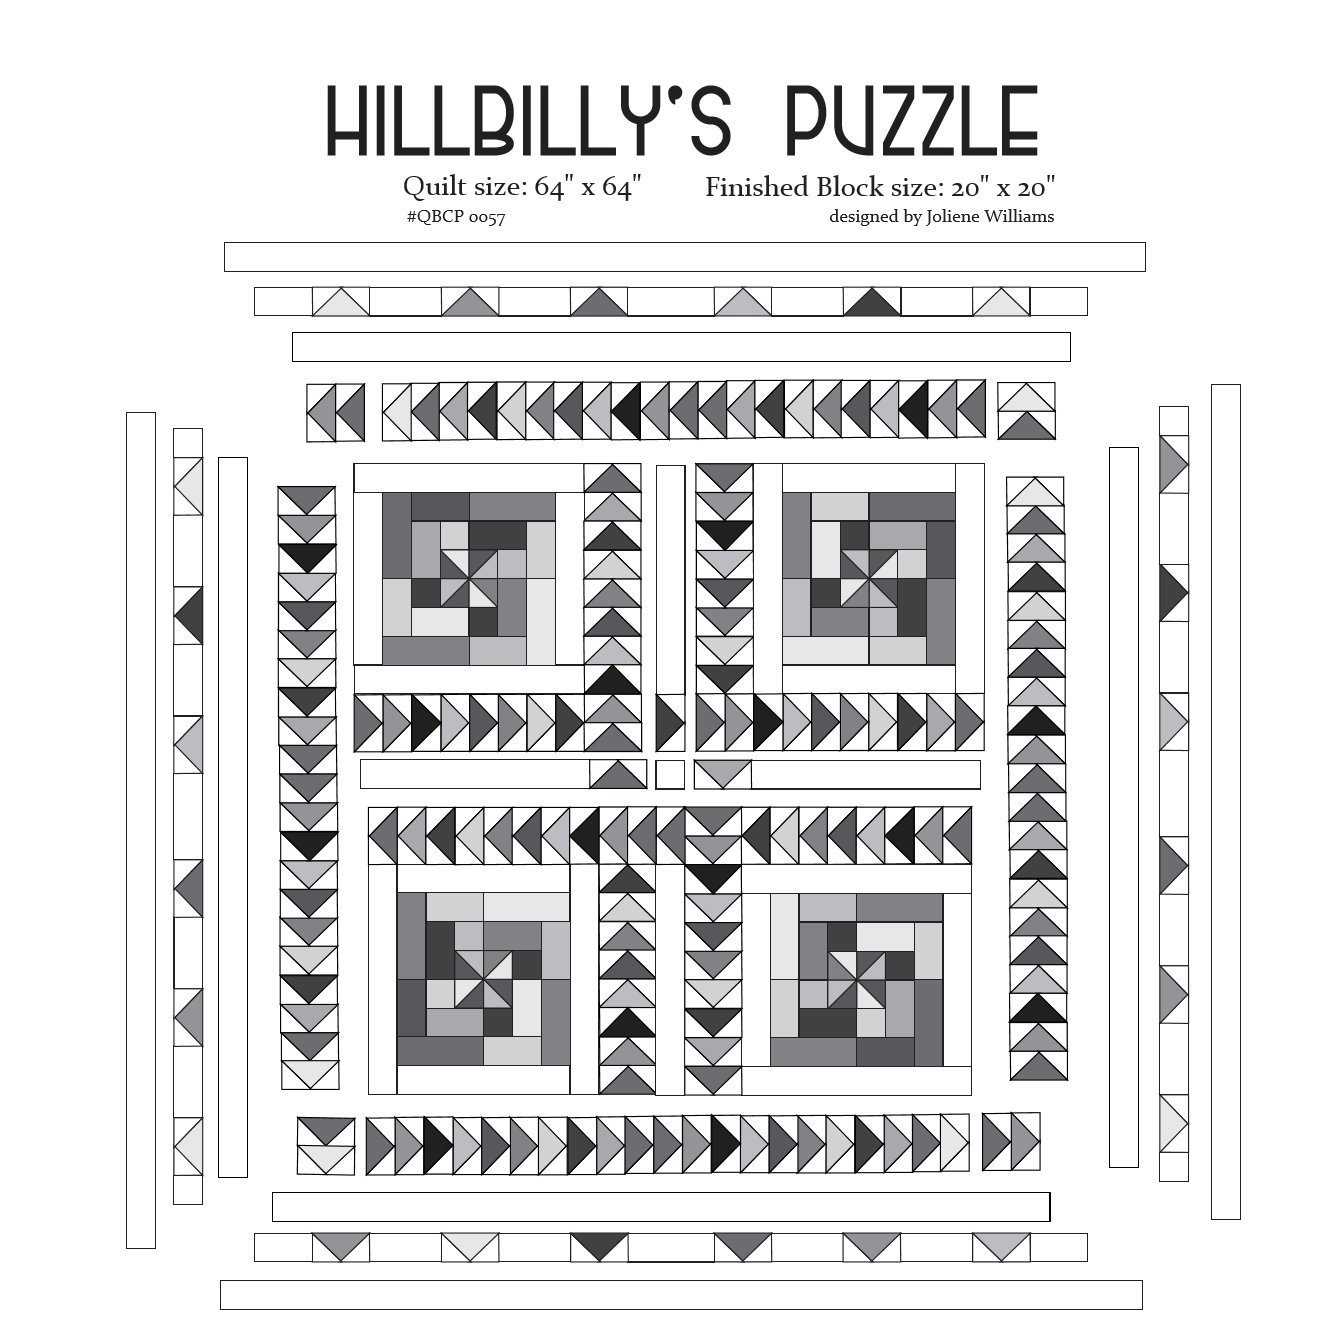 Hillbilly's Puzzle